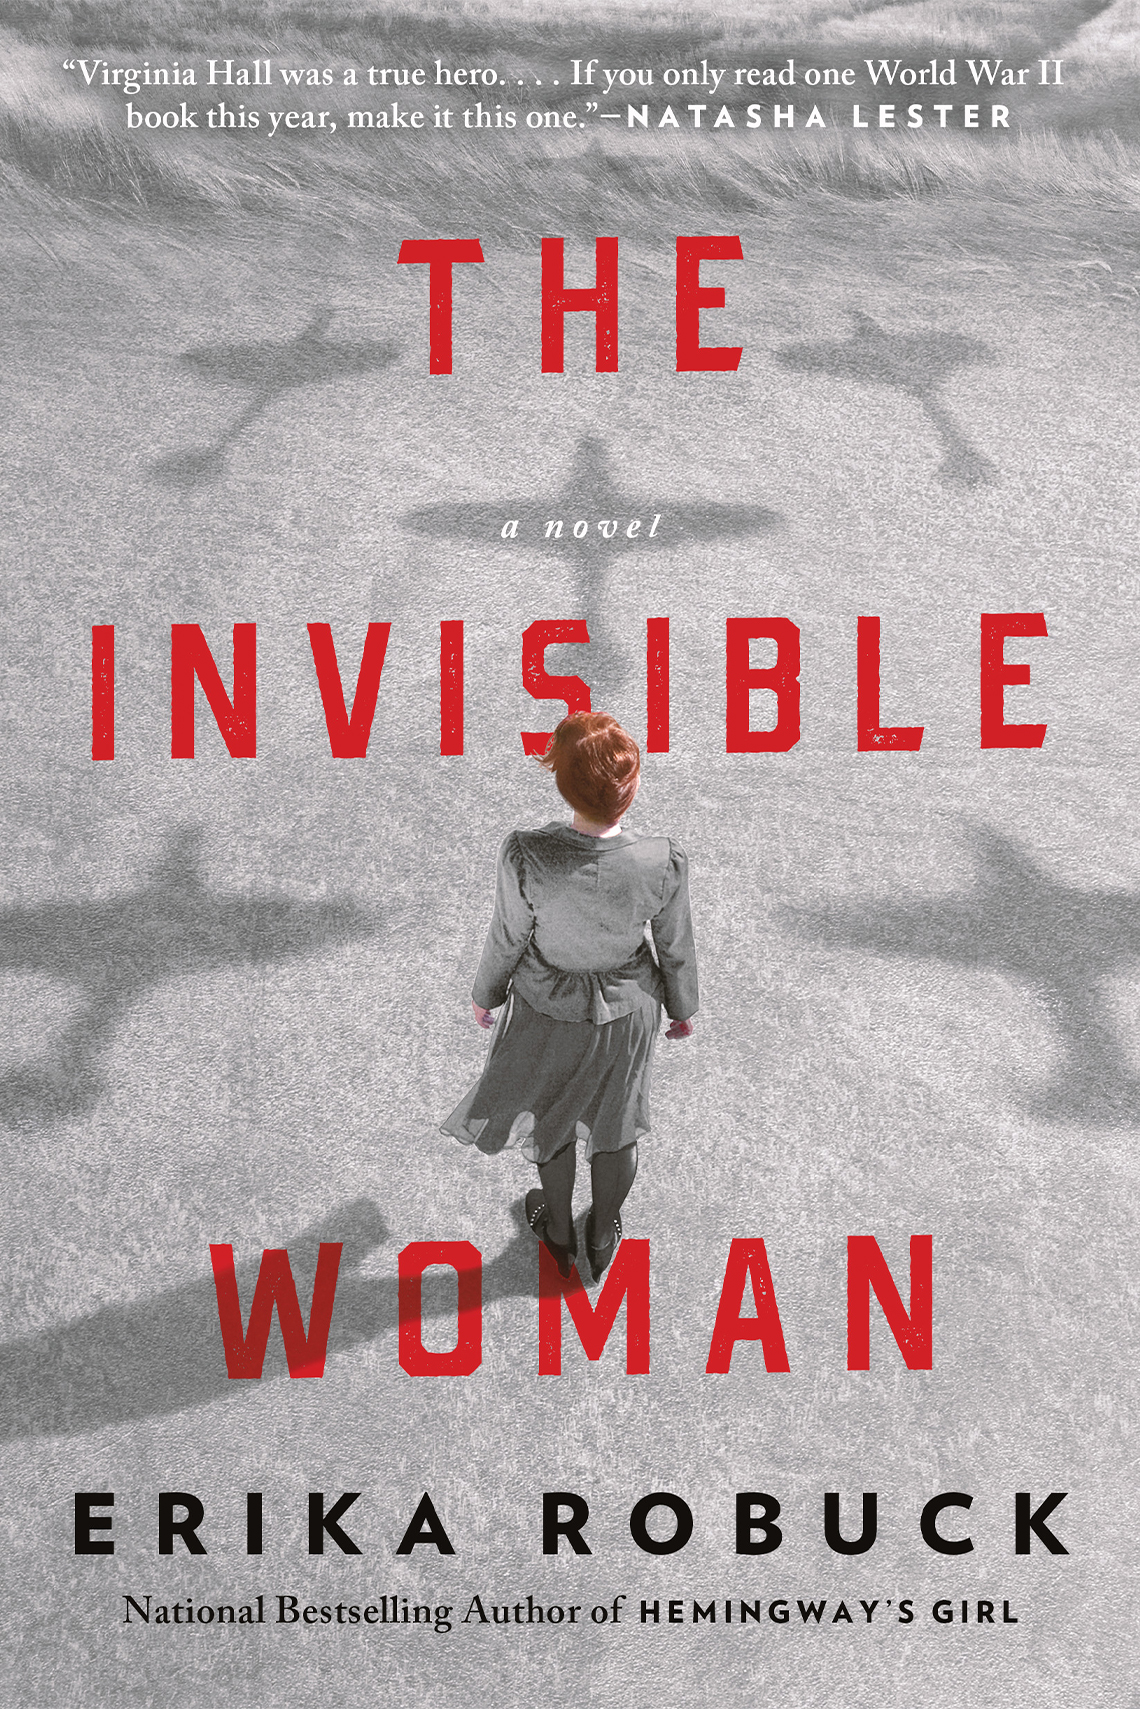 erika robuck the invisible woman